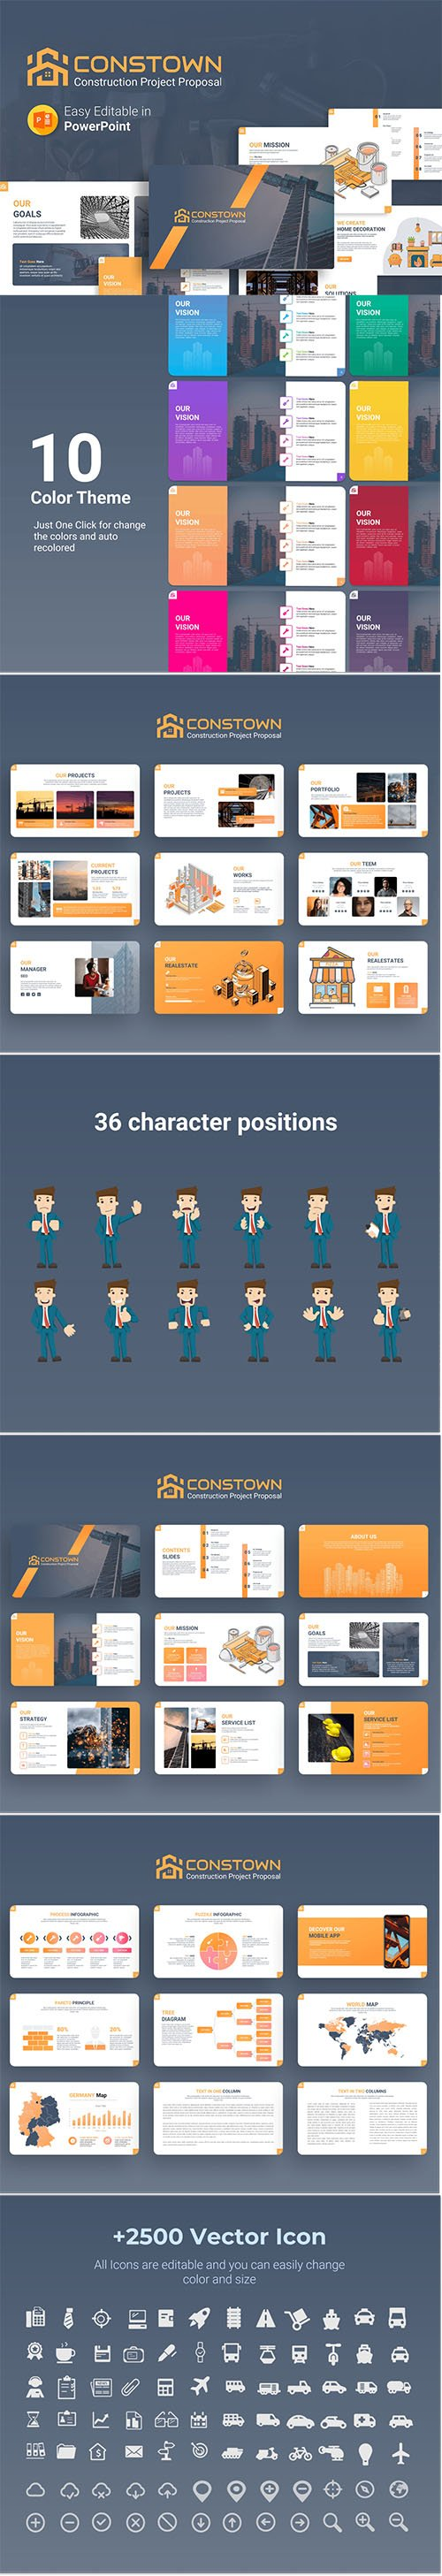 Constown – Construction Project Presentation